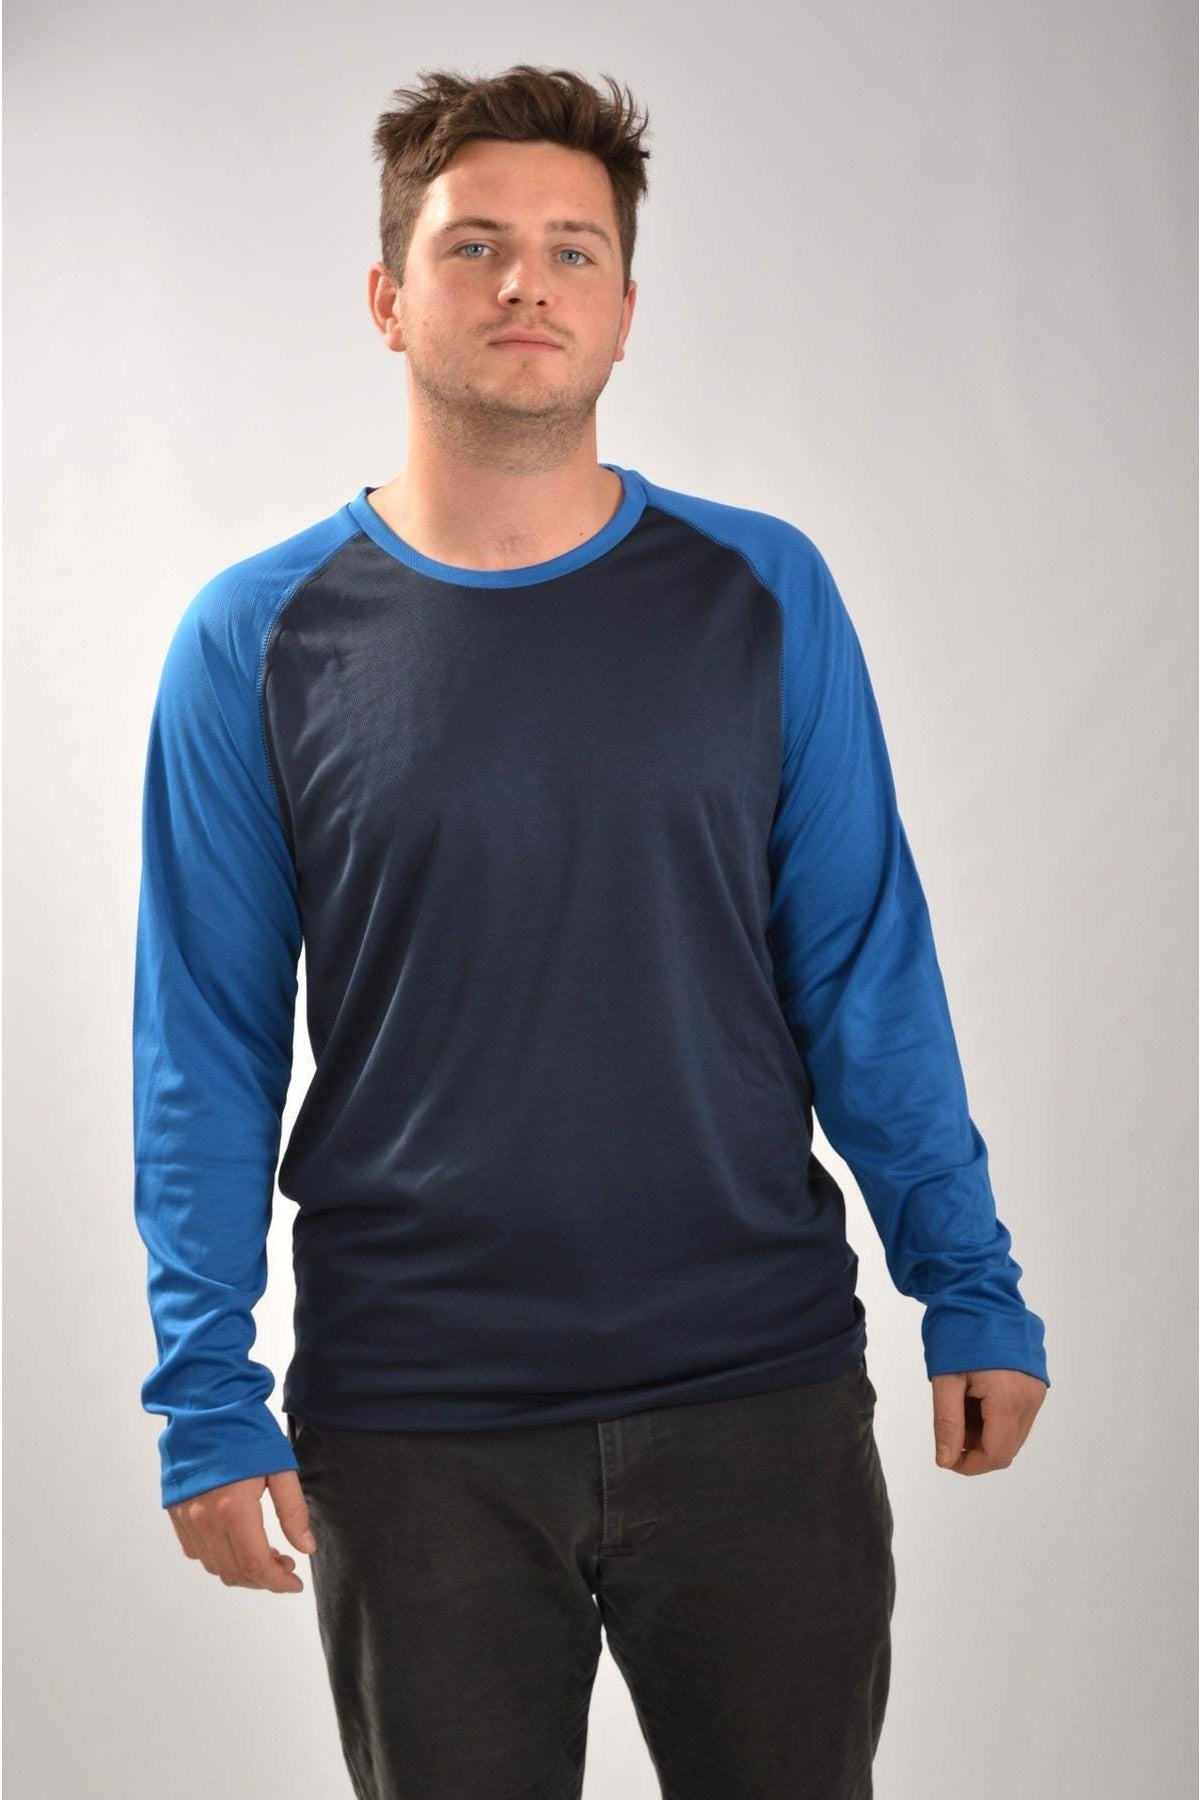 Mountain Warehouse Two Tone Long Sleeve Active Top | XS / Navy/Blue Secret Label